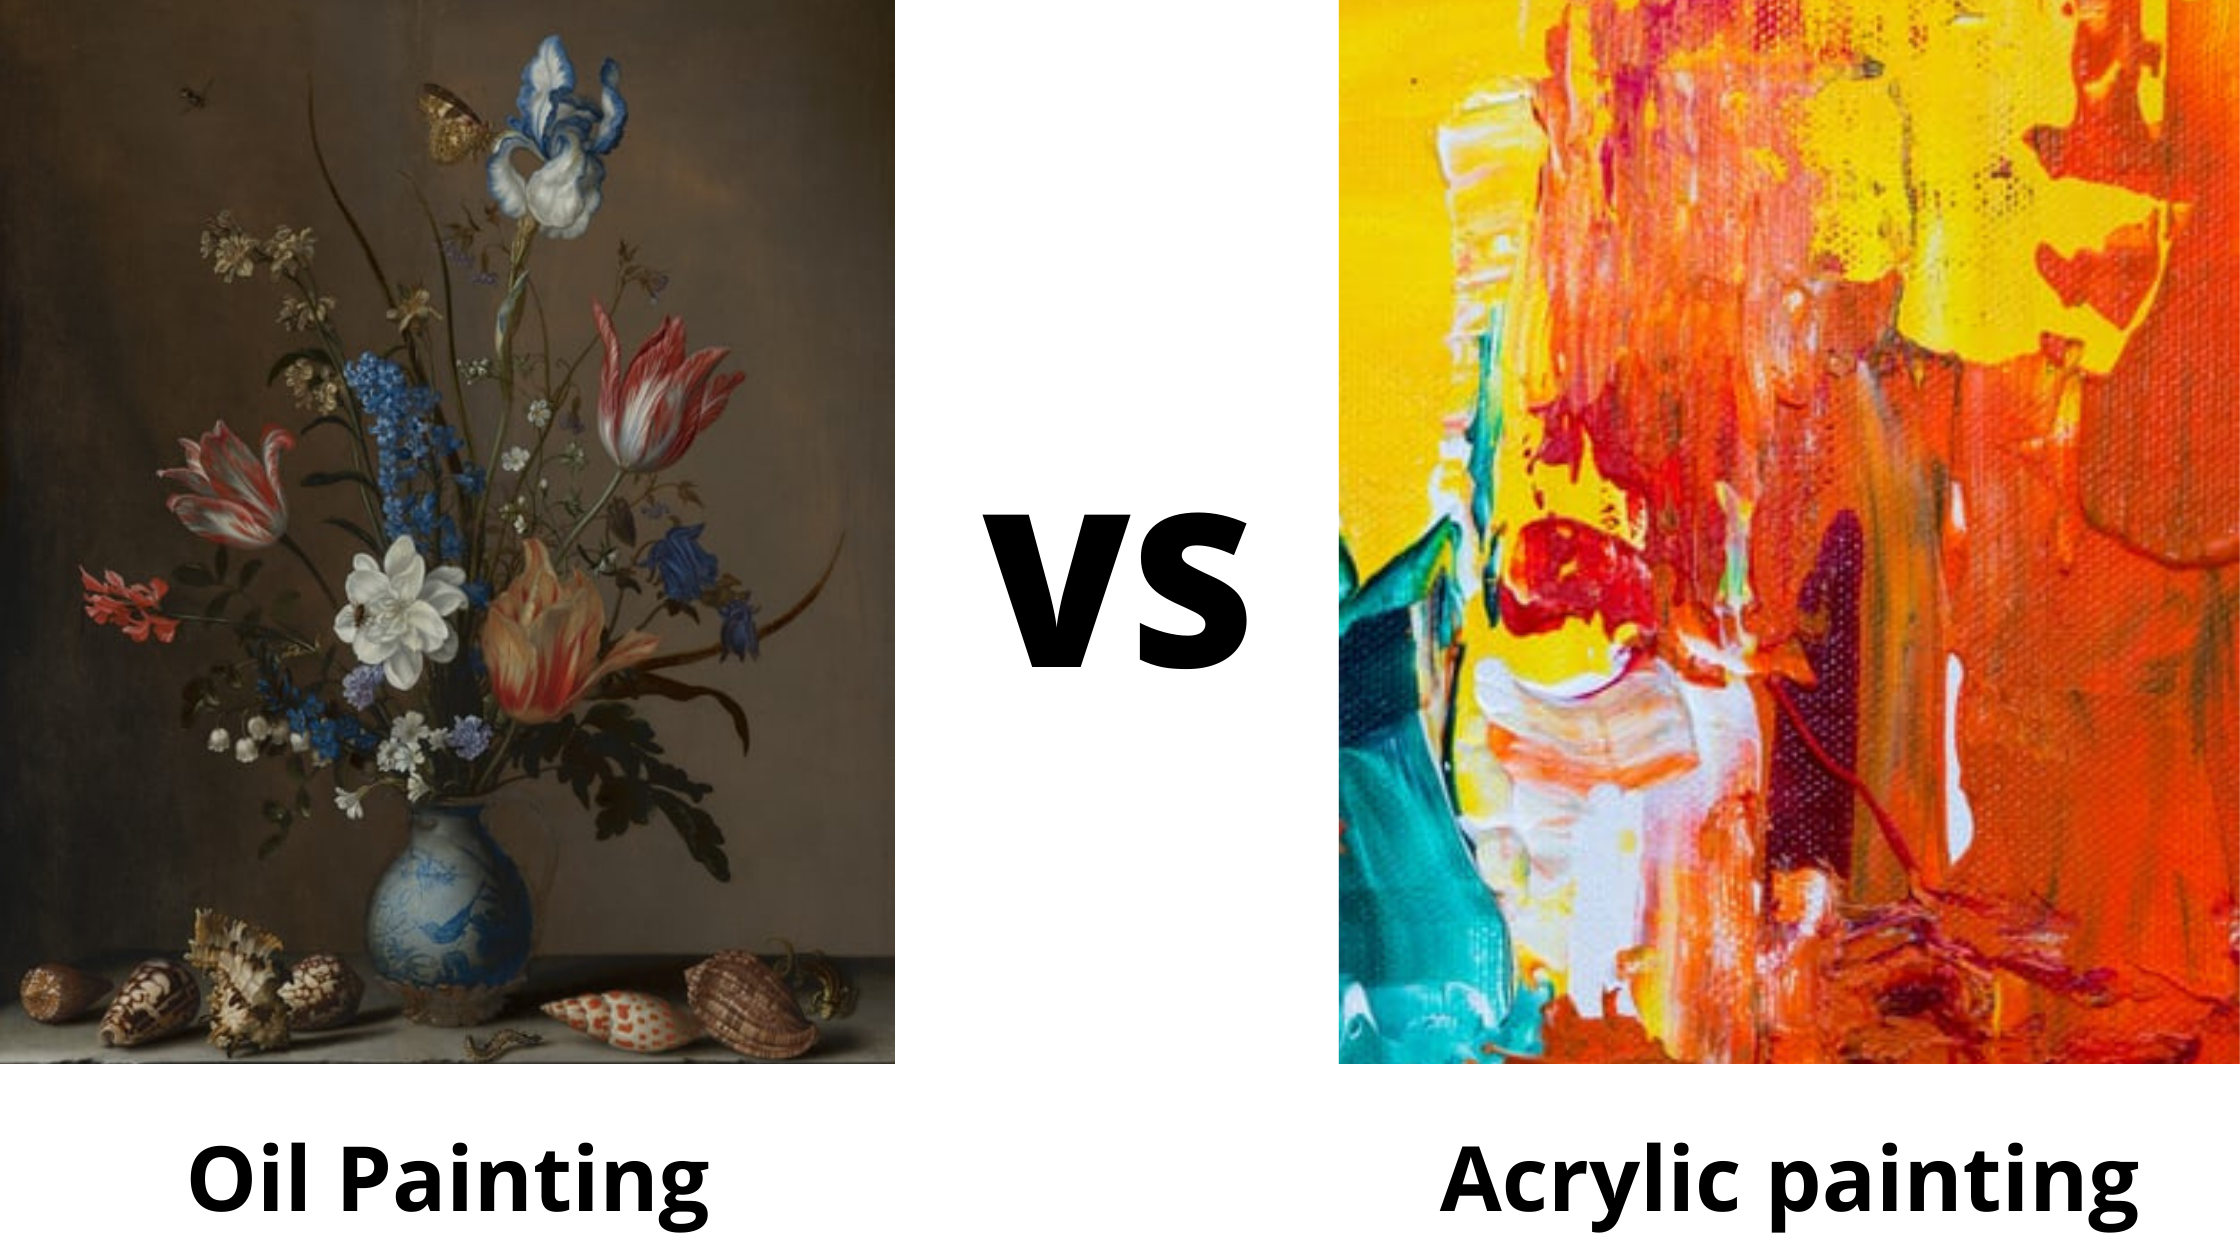 How to tell the difference between acrylic and oil painting?